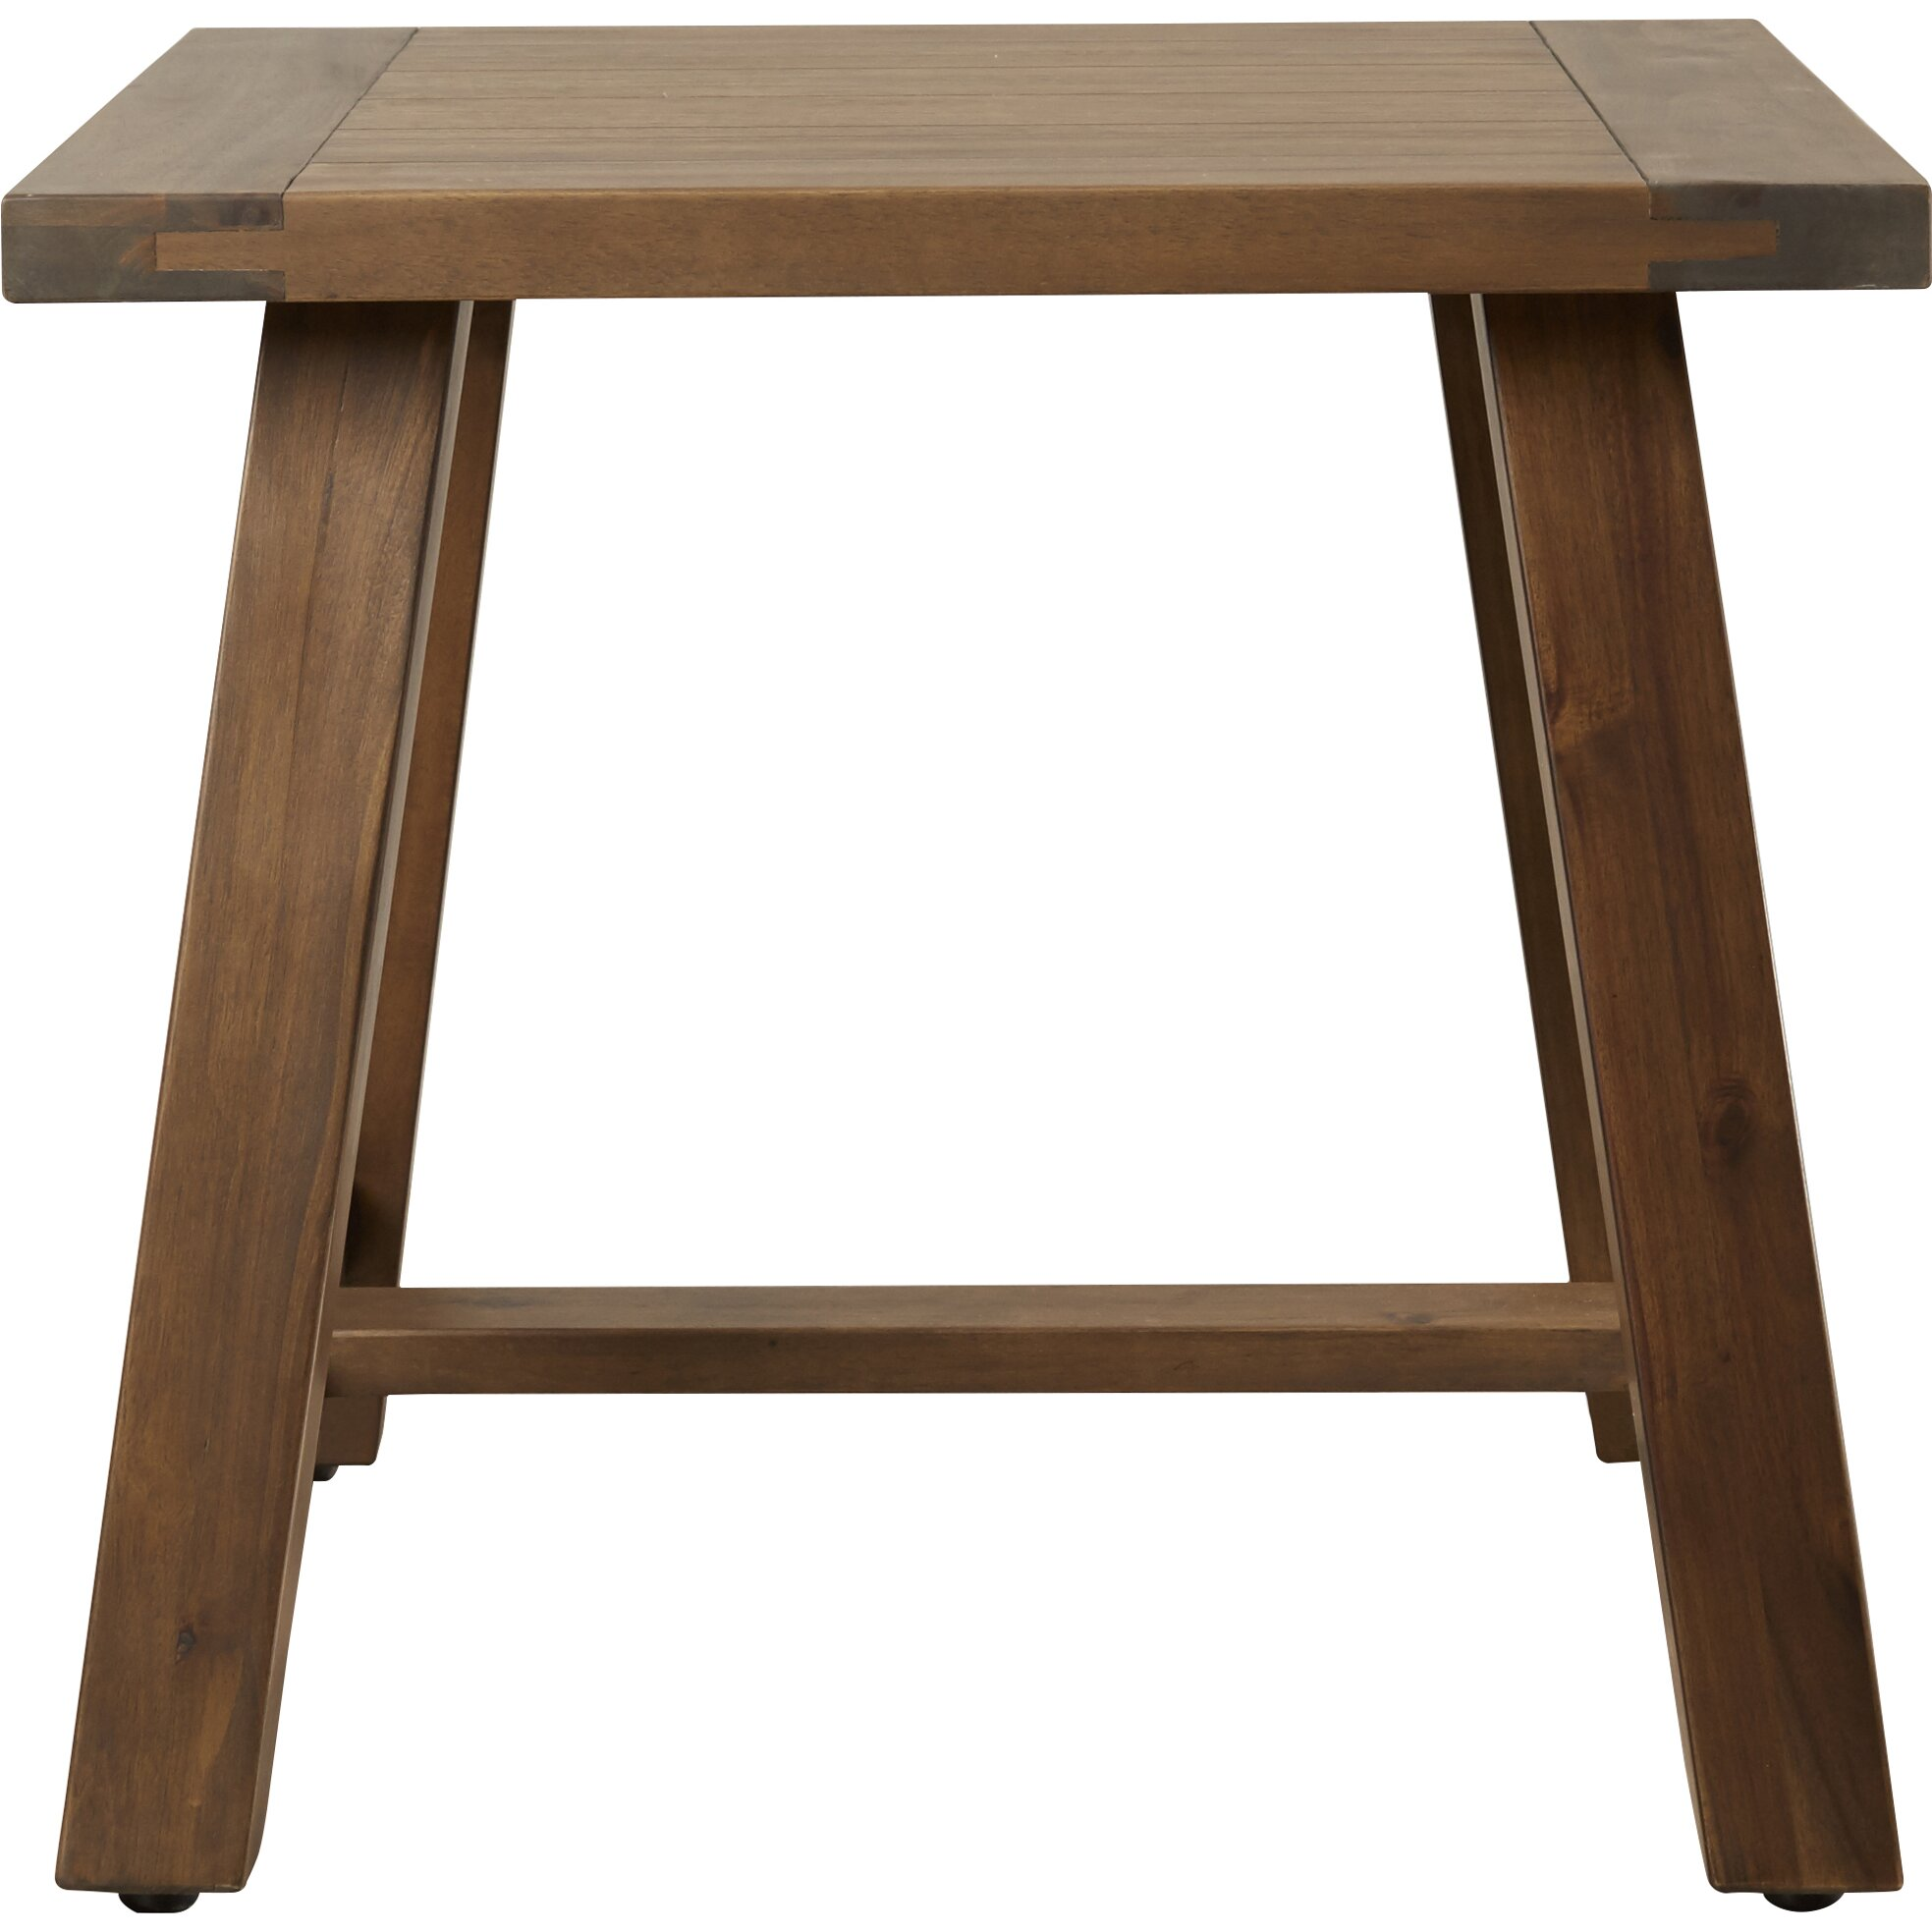 Loon peak natoas end table reviews wayfair for End tables for sale near me